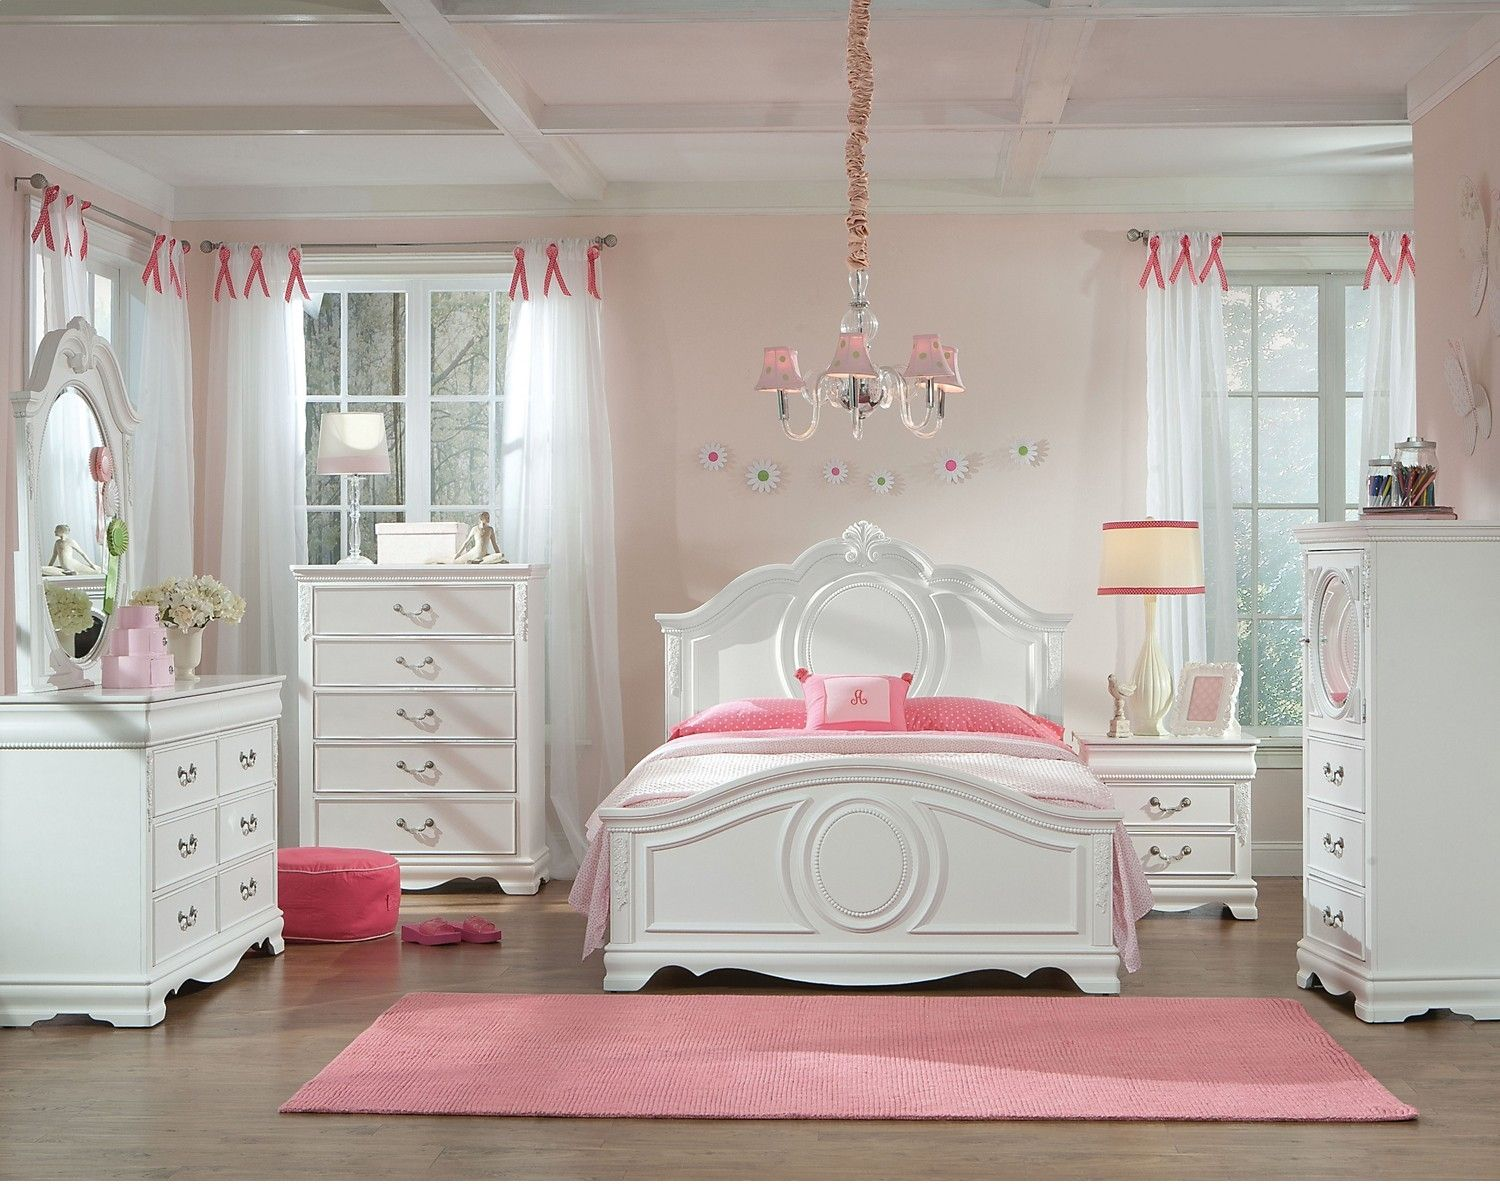 Alex Daisy Online Kids Furniture Store In Bangalore That Provides - Childrens bedroom furniture cheap prices